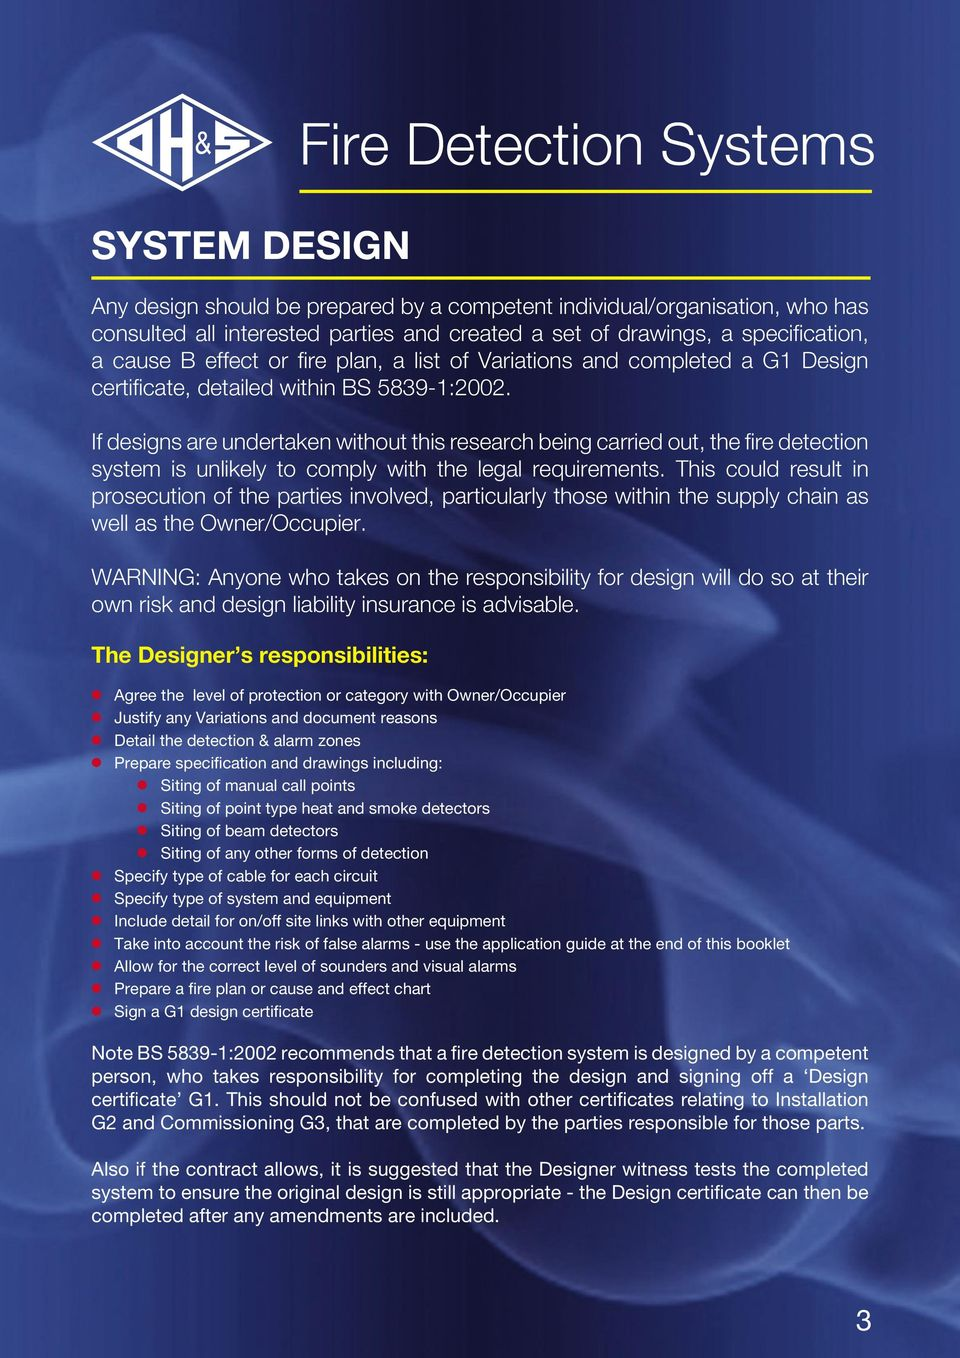 If designs are undertaken without this research being carried out, the fire detection system is unlikely to comply with the legal requirements.